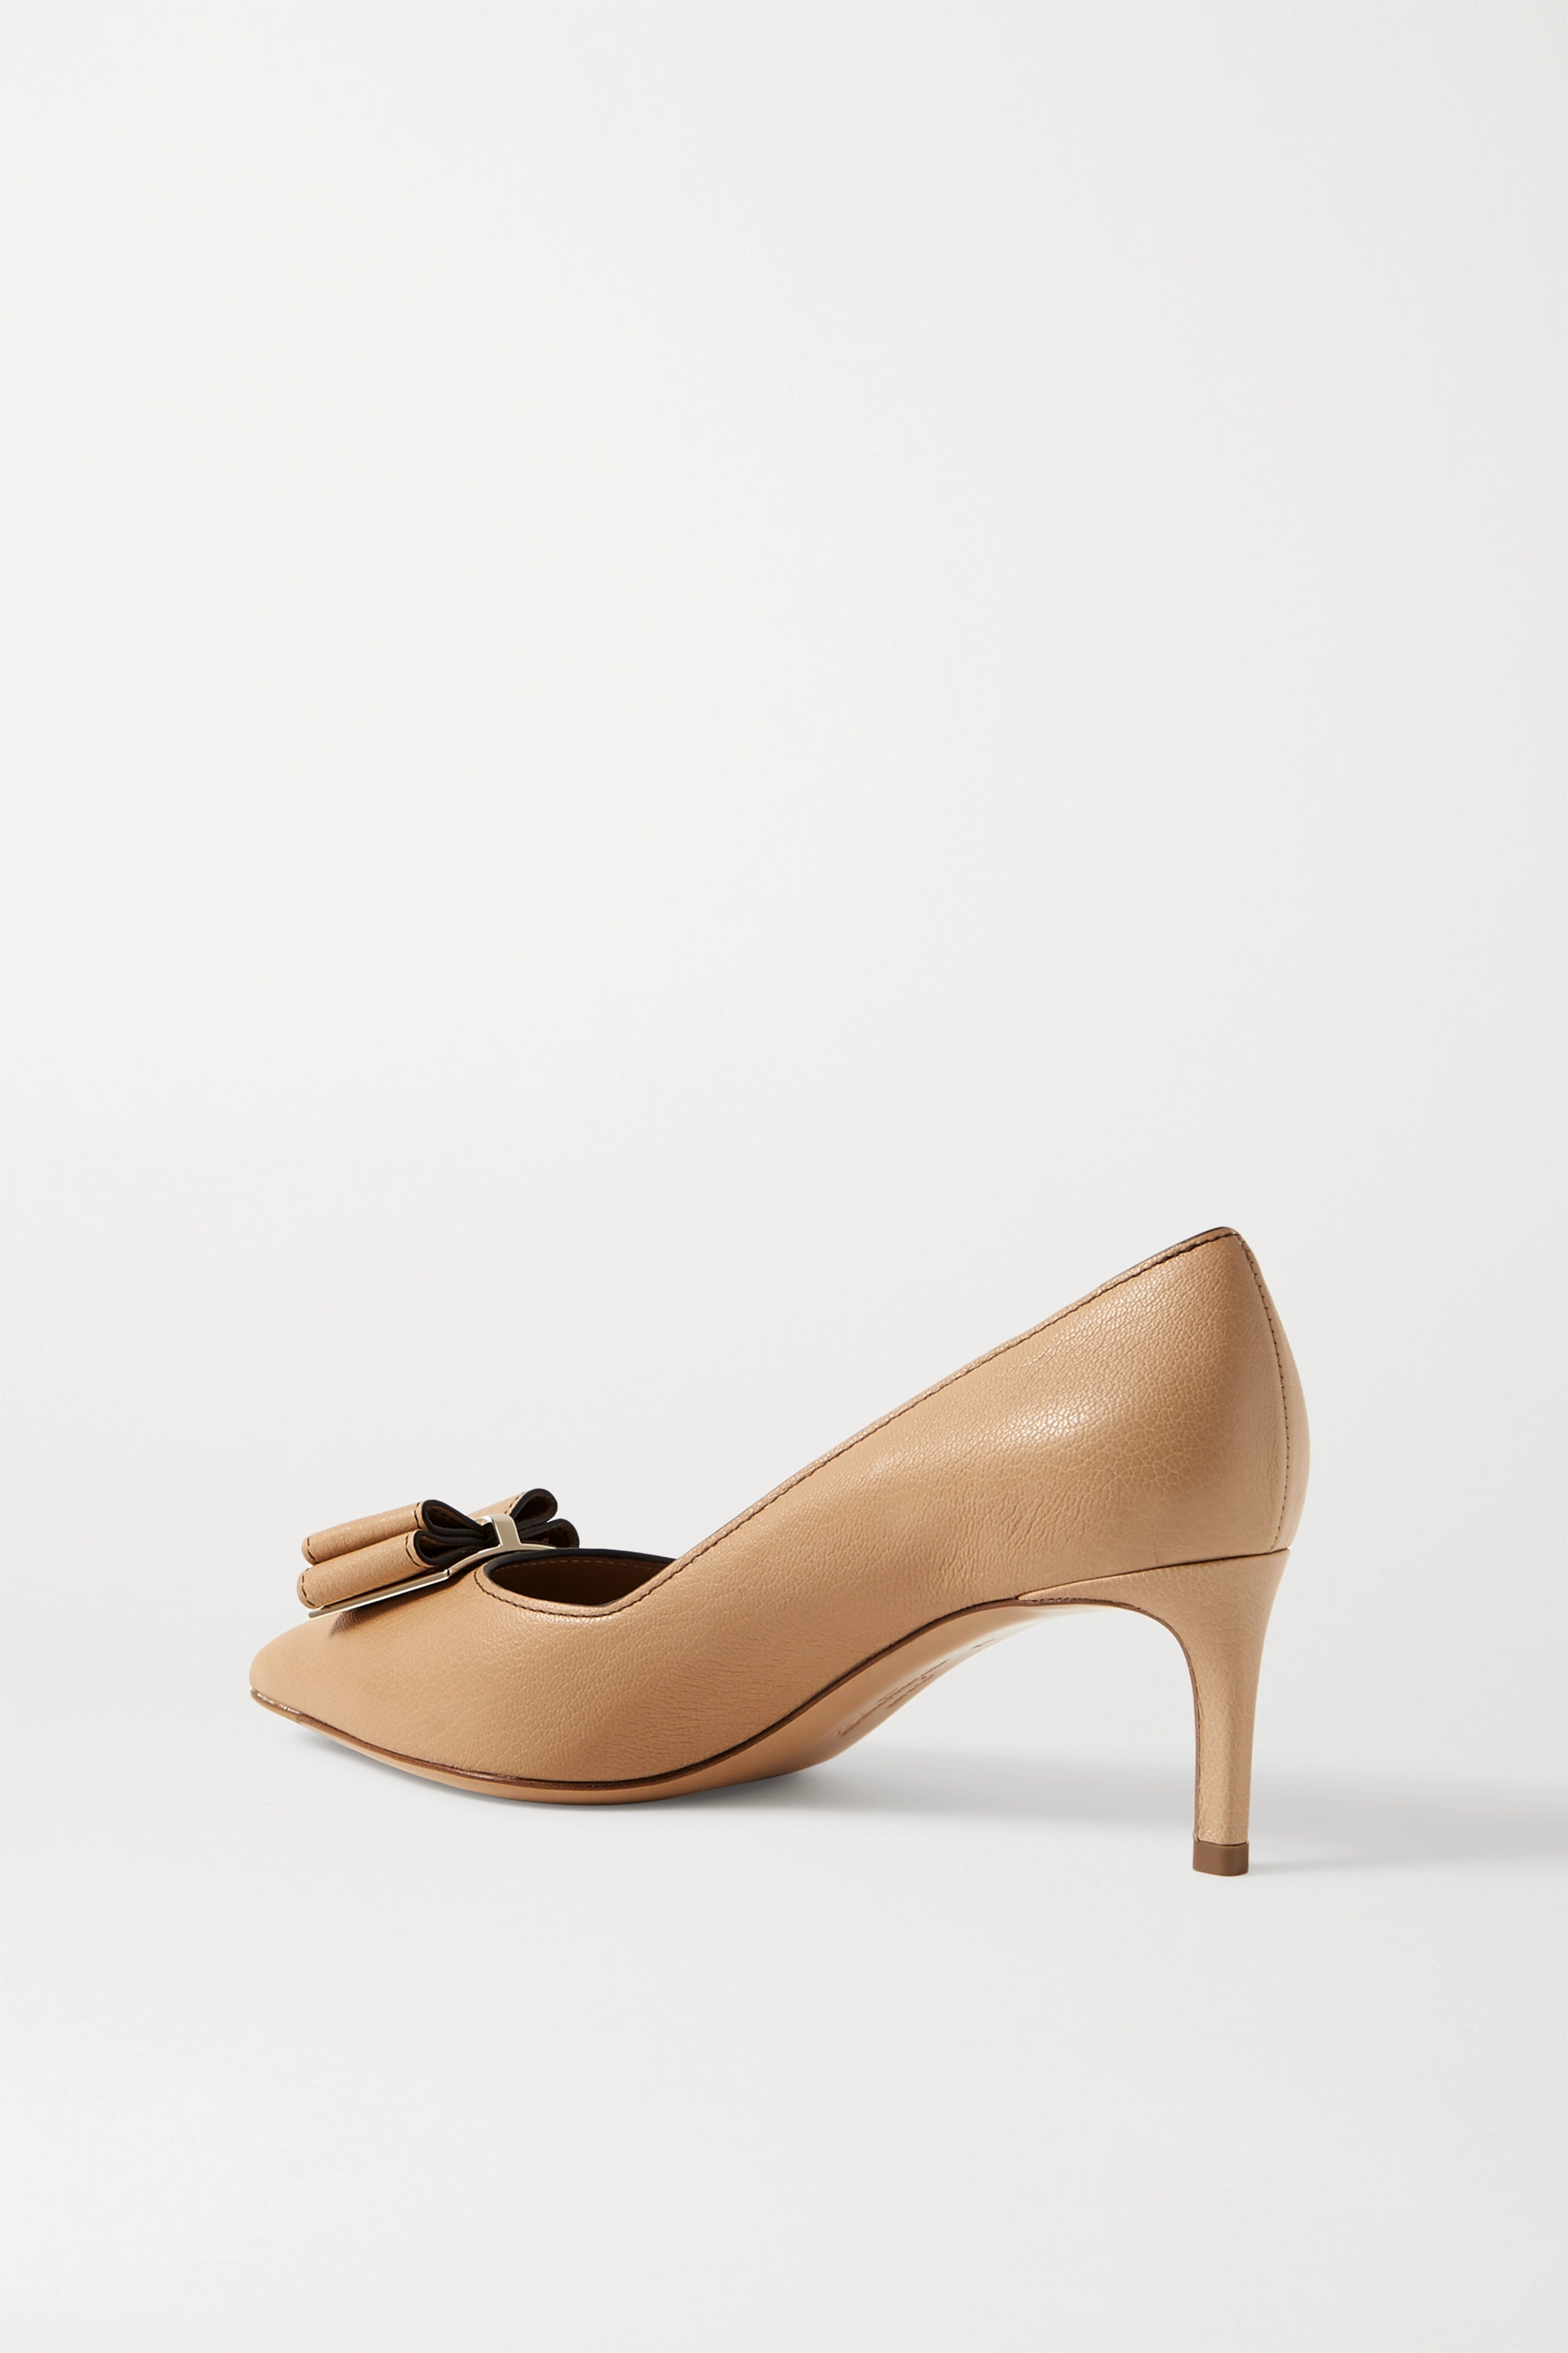 Salvatore Ferragamo Zaia bow-embellished textured-leather pumps